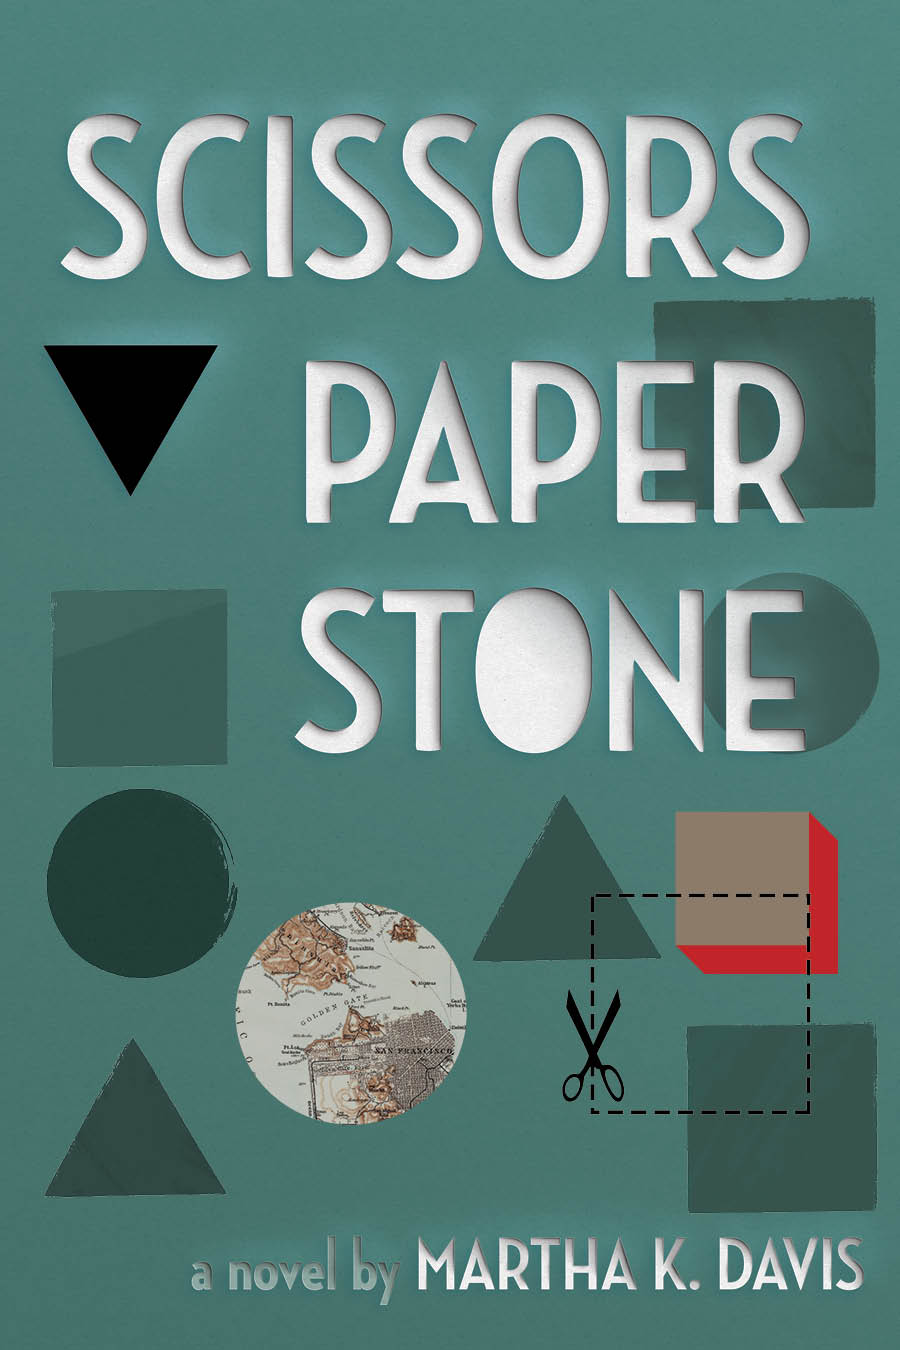 An abstract design of circles, triangles and squares, one of the circles made up of a map and white script that reads Scissors Paper Stone a novel by Martha K. Davis.